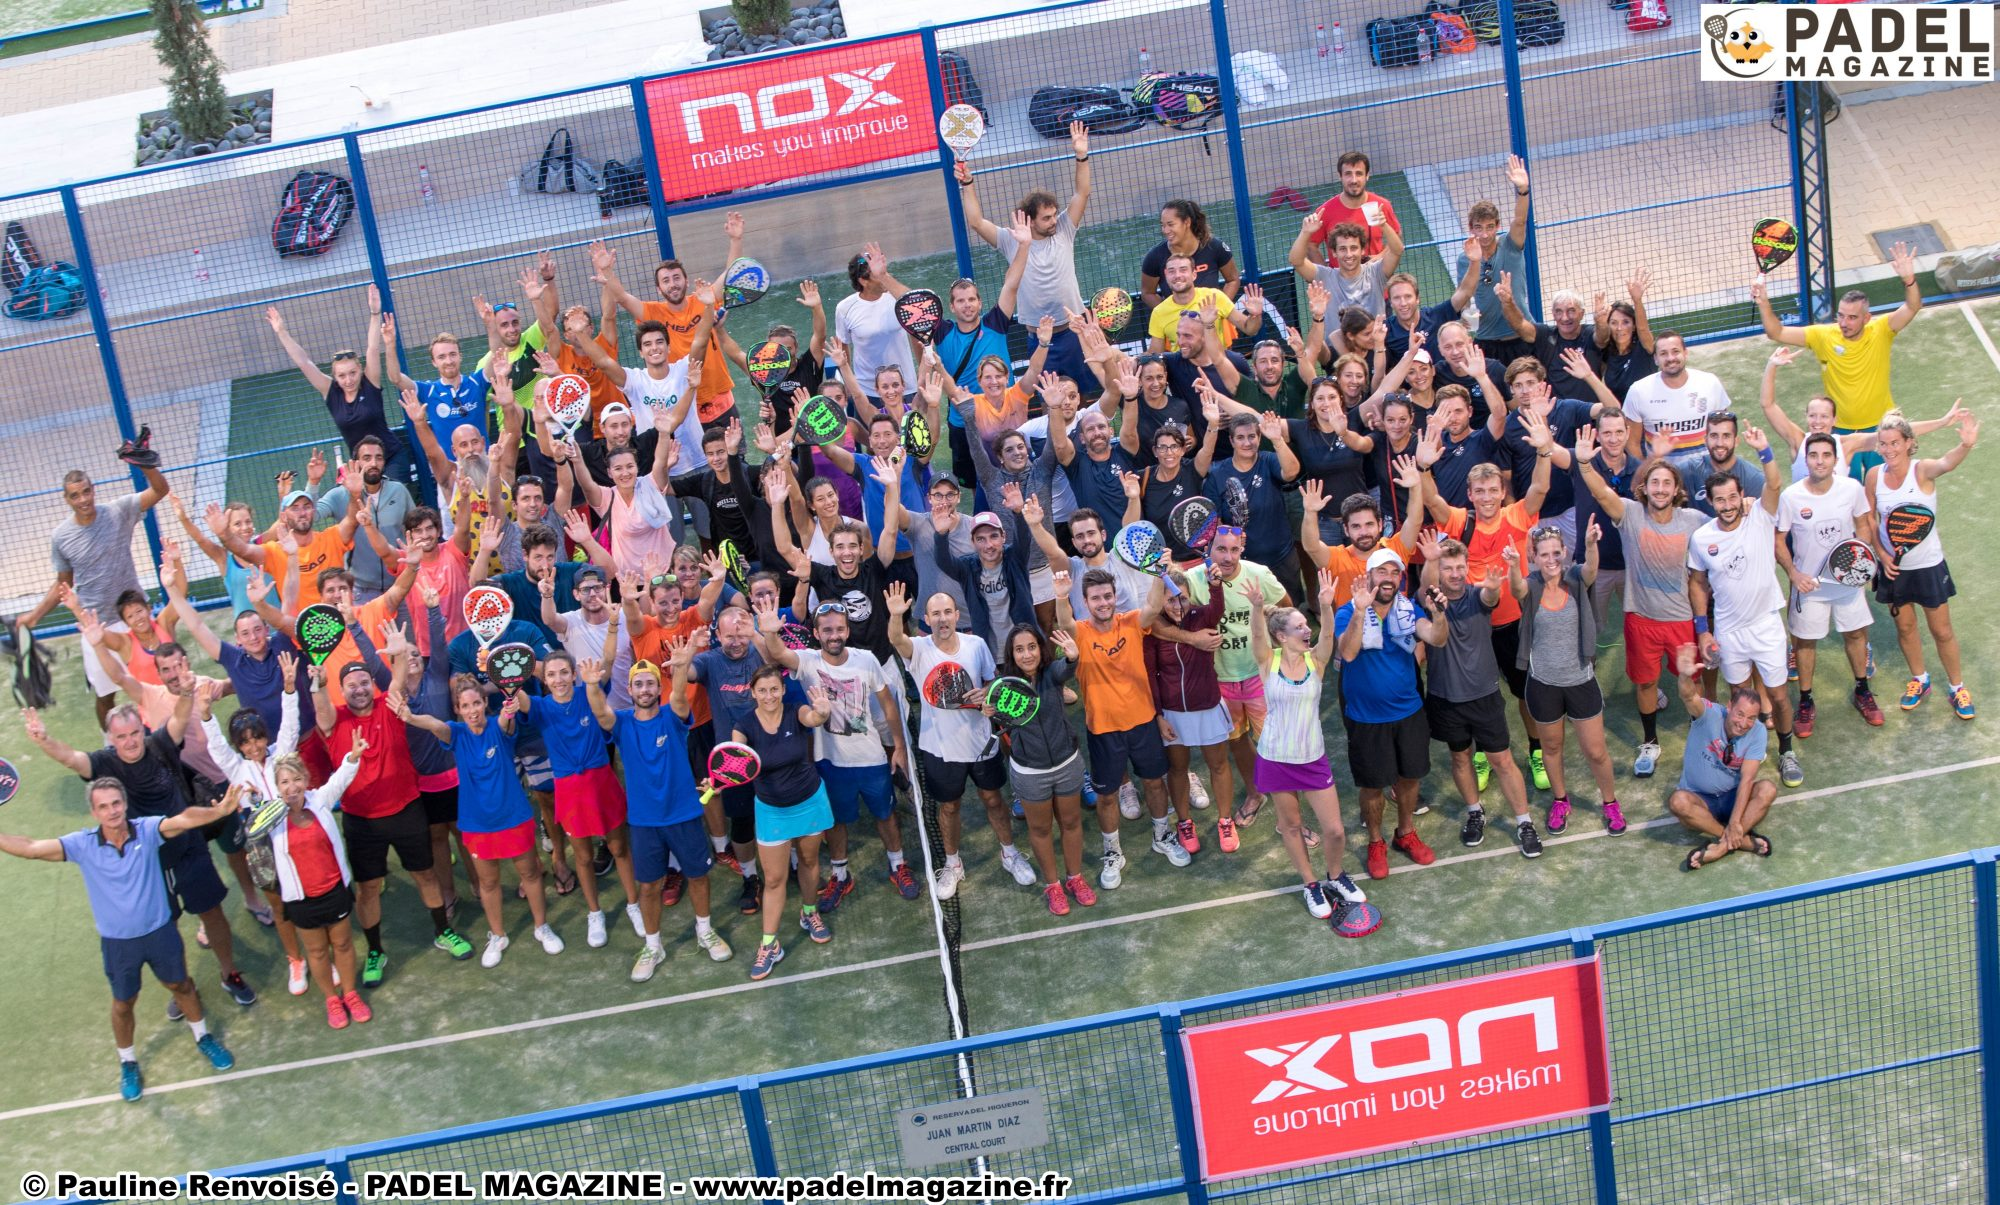 4PADEL BORDEAUX and ESPRIT PADEL shine at the Setteo Team Cup by Nox